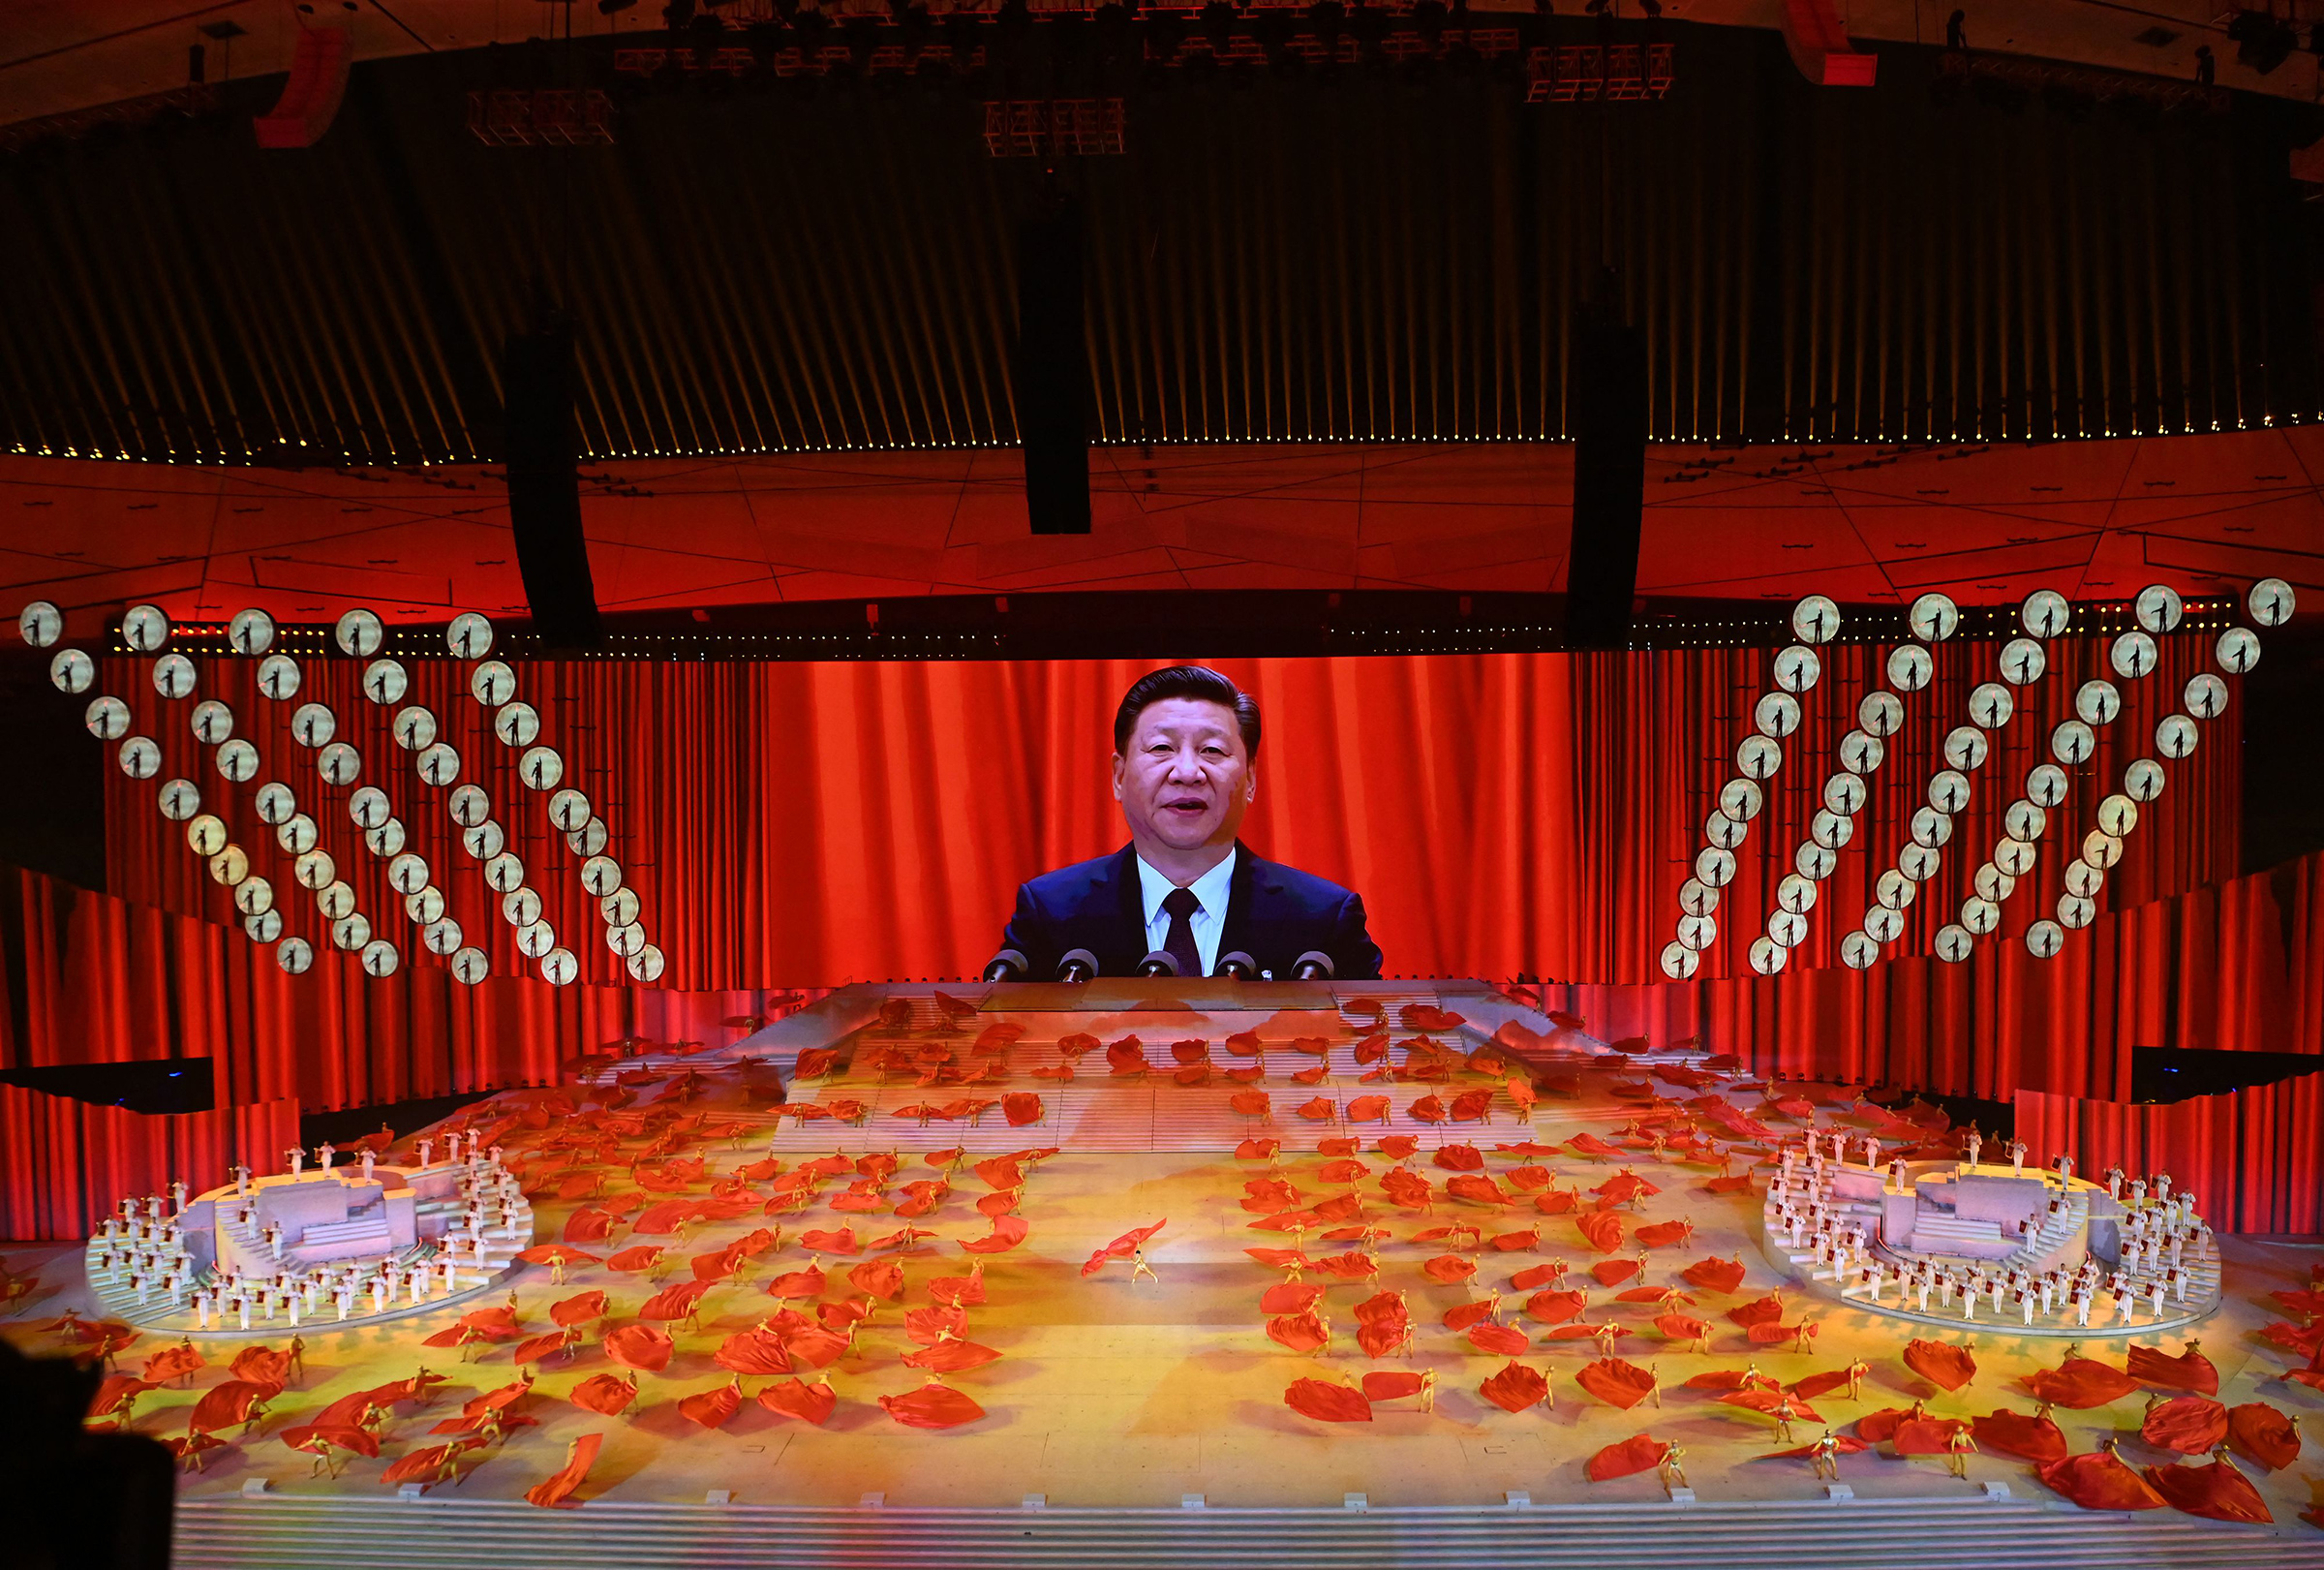 President Xi Jinping of China is seen on a large screen during a performance at the National Stadium in Beijing on June 28, 2021, as part of the celebrations of the 100th Anniversary of the founding of the Communist Party of China on July 1.